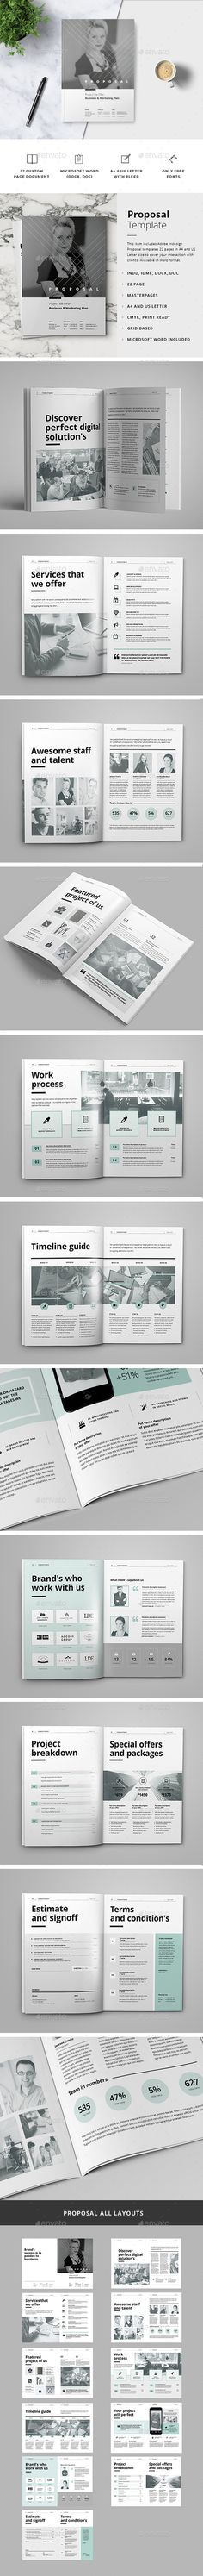 Web Proposal Project Template  Proposal Proposaltemplate